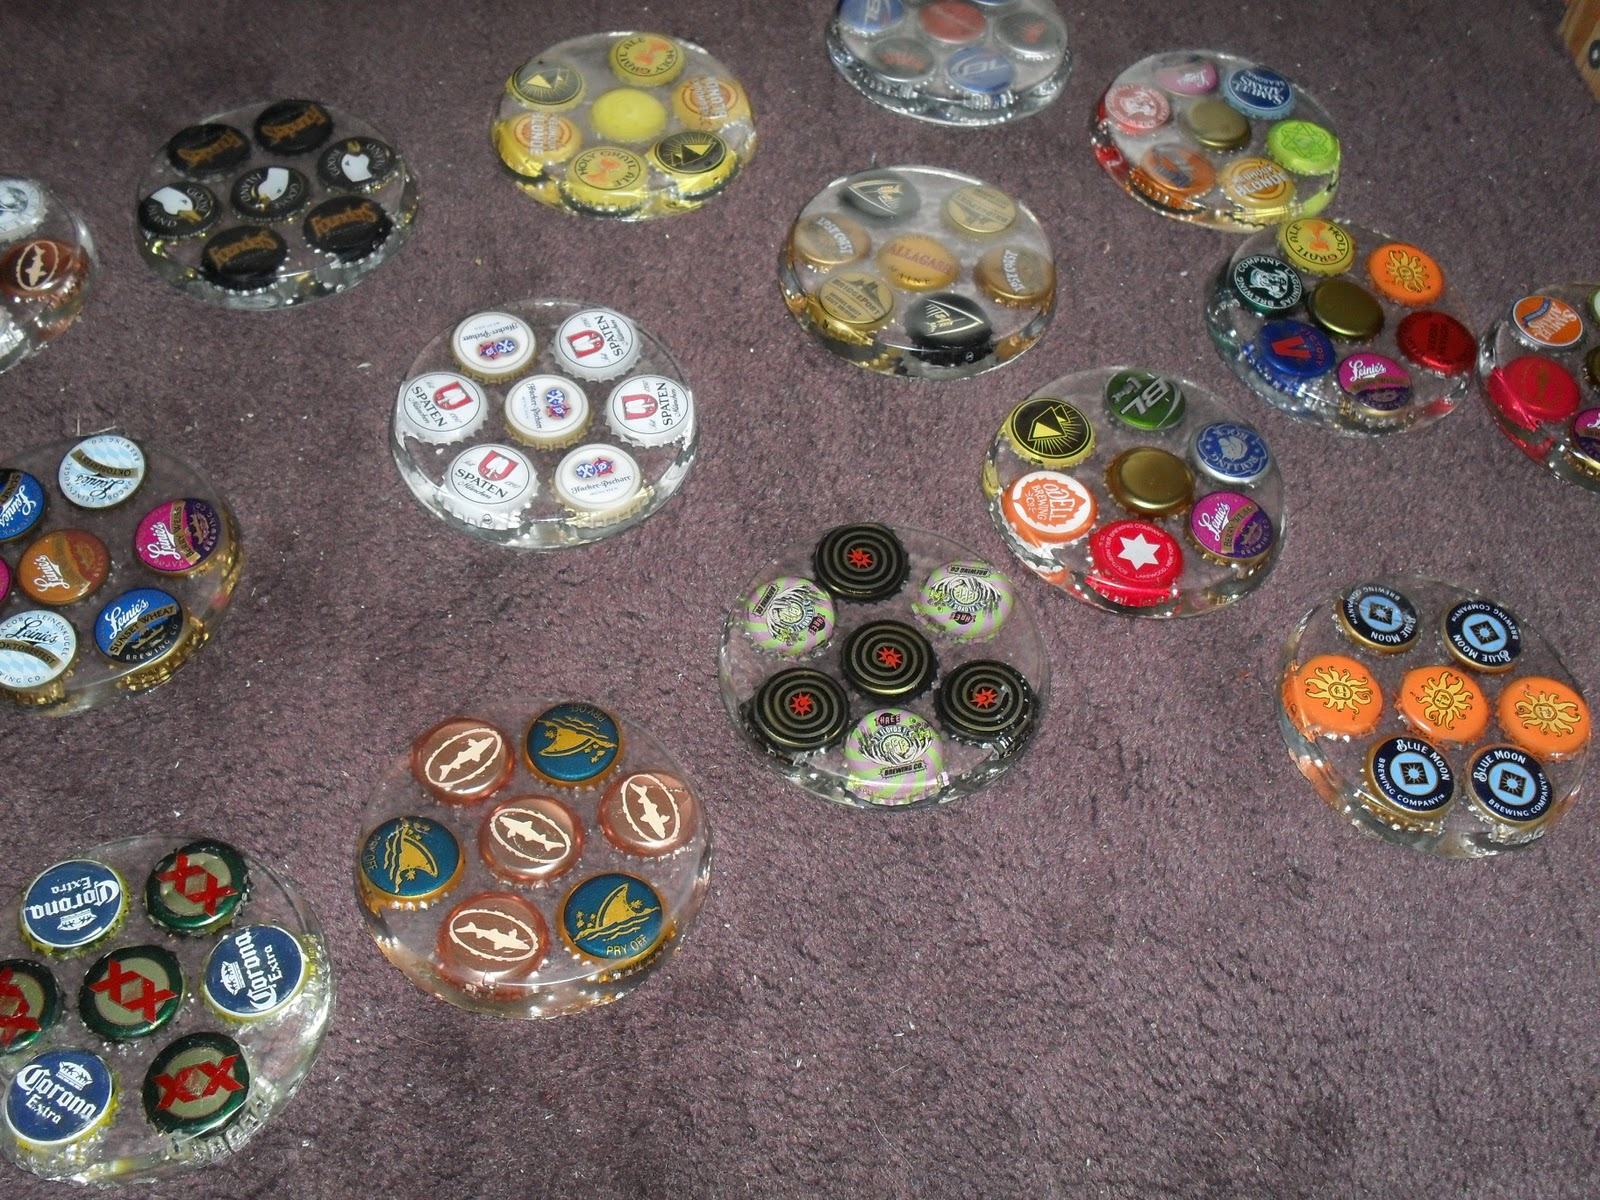 Theatre projects coasters for christmas for Beer bottle cap projects